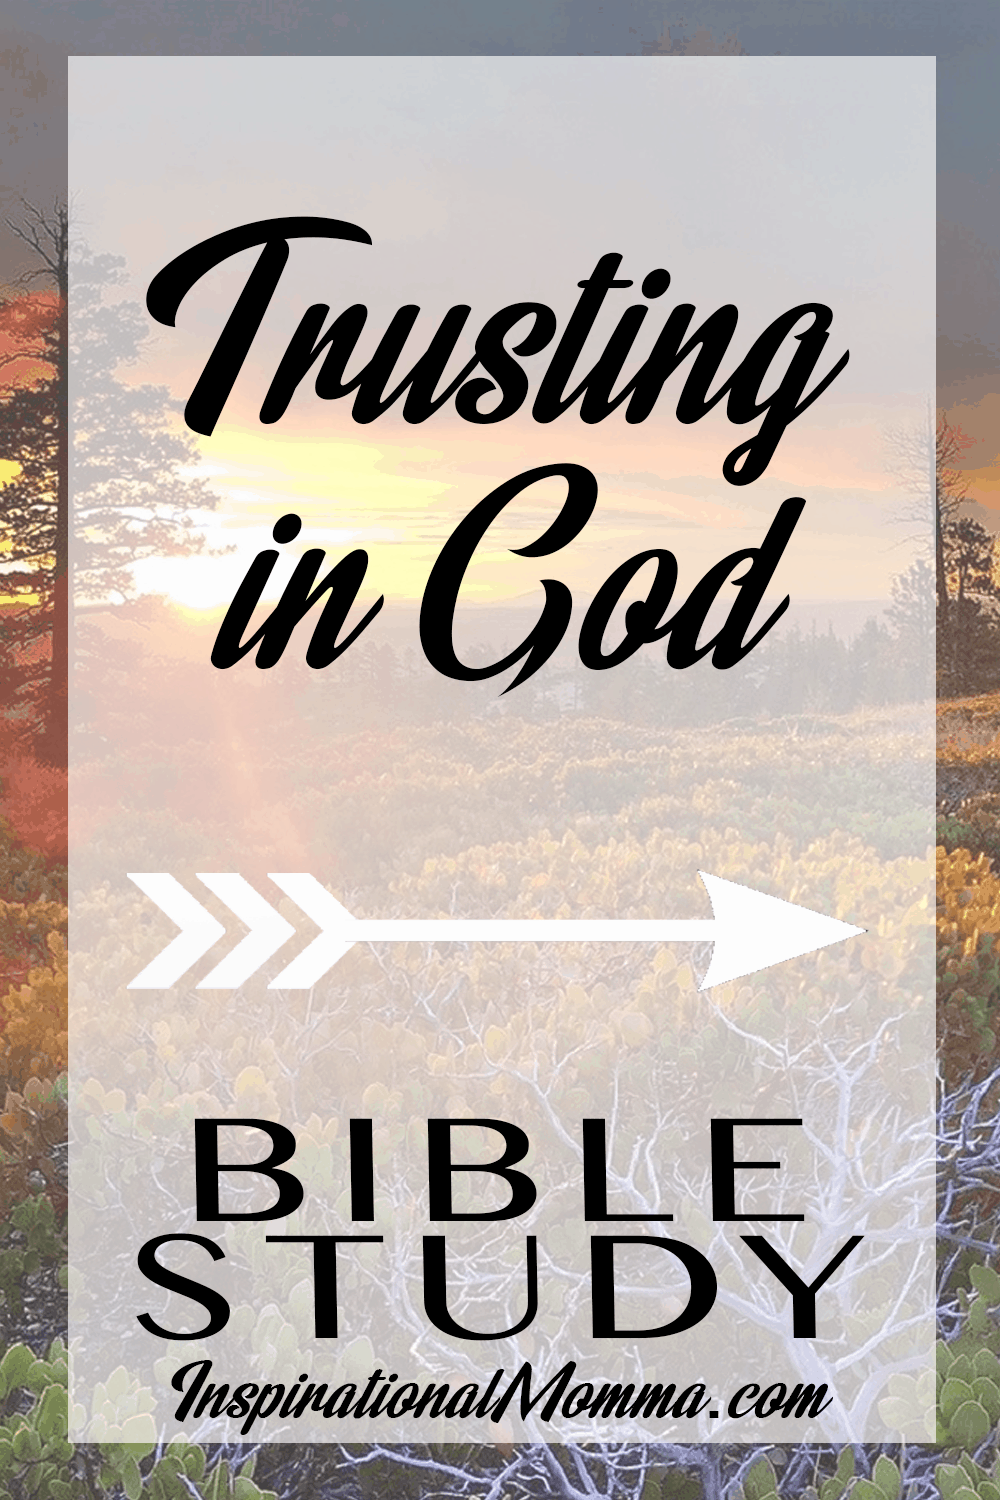 As we face life's challenges, we must continue Trusting in God. His Word and this Bible study reminds us that He is in control in every situation. #Bible #Biblestudy #buildingfaith #faith #Godstiming #InspirationalMomma #God